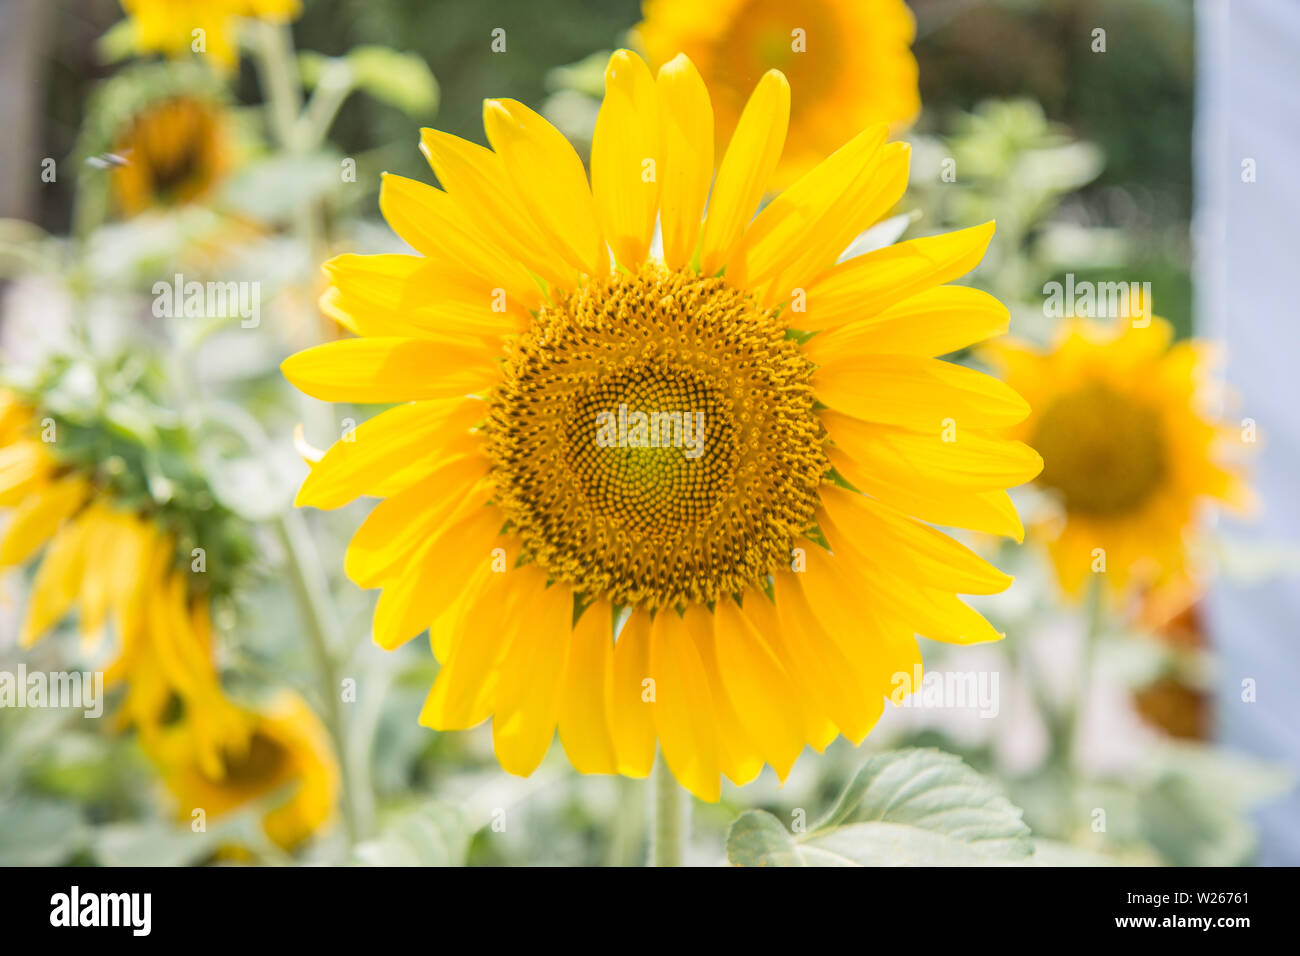 Sunflowers or Helianthus annuus field in the garden - Stock Image